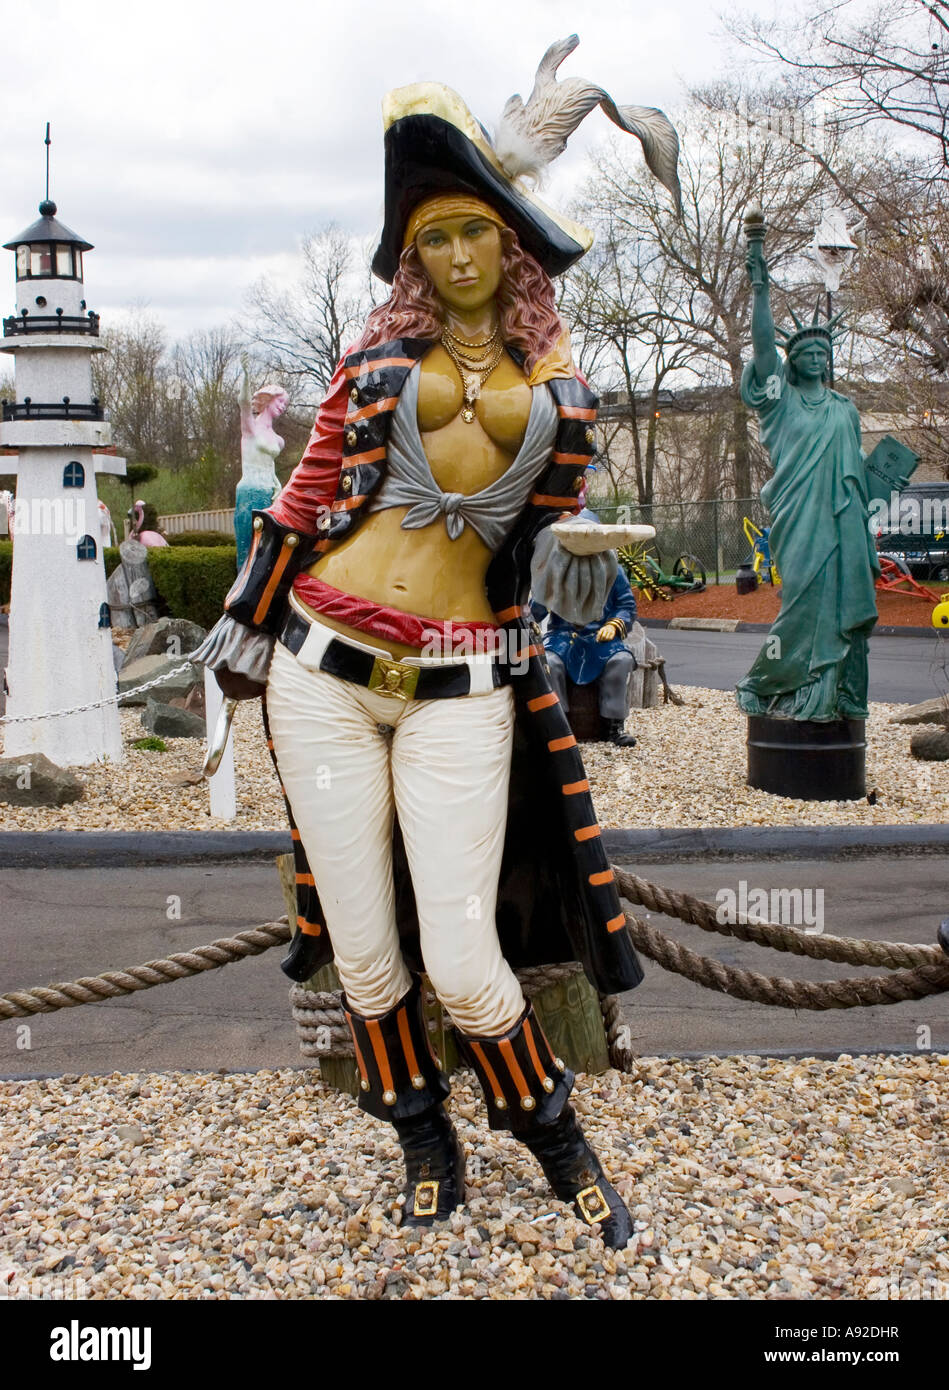 Female pirate statue at the Classic Auto Wash in Cromwell Connecticut - Stock Image